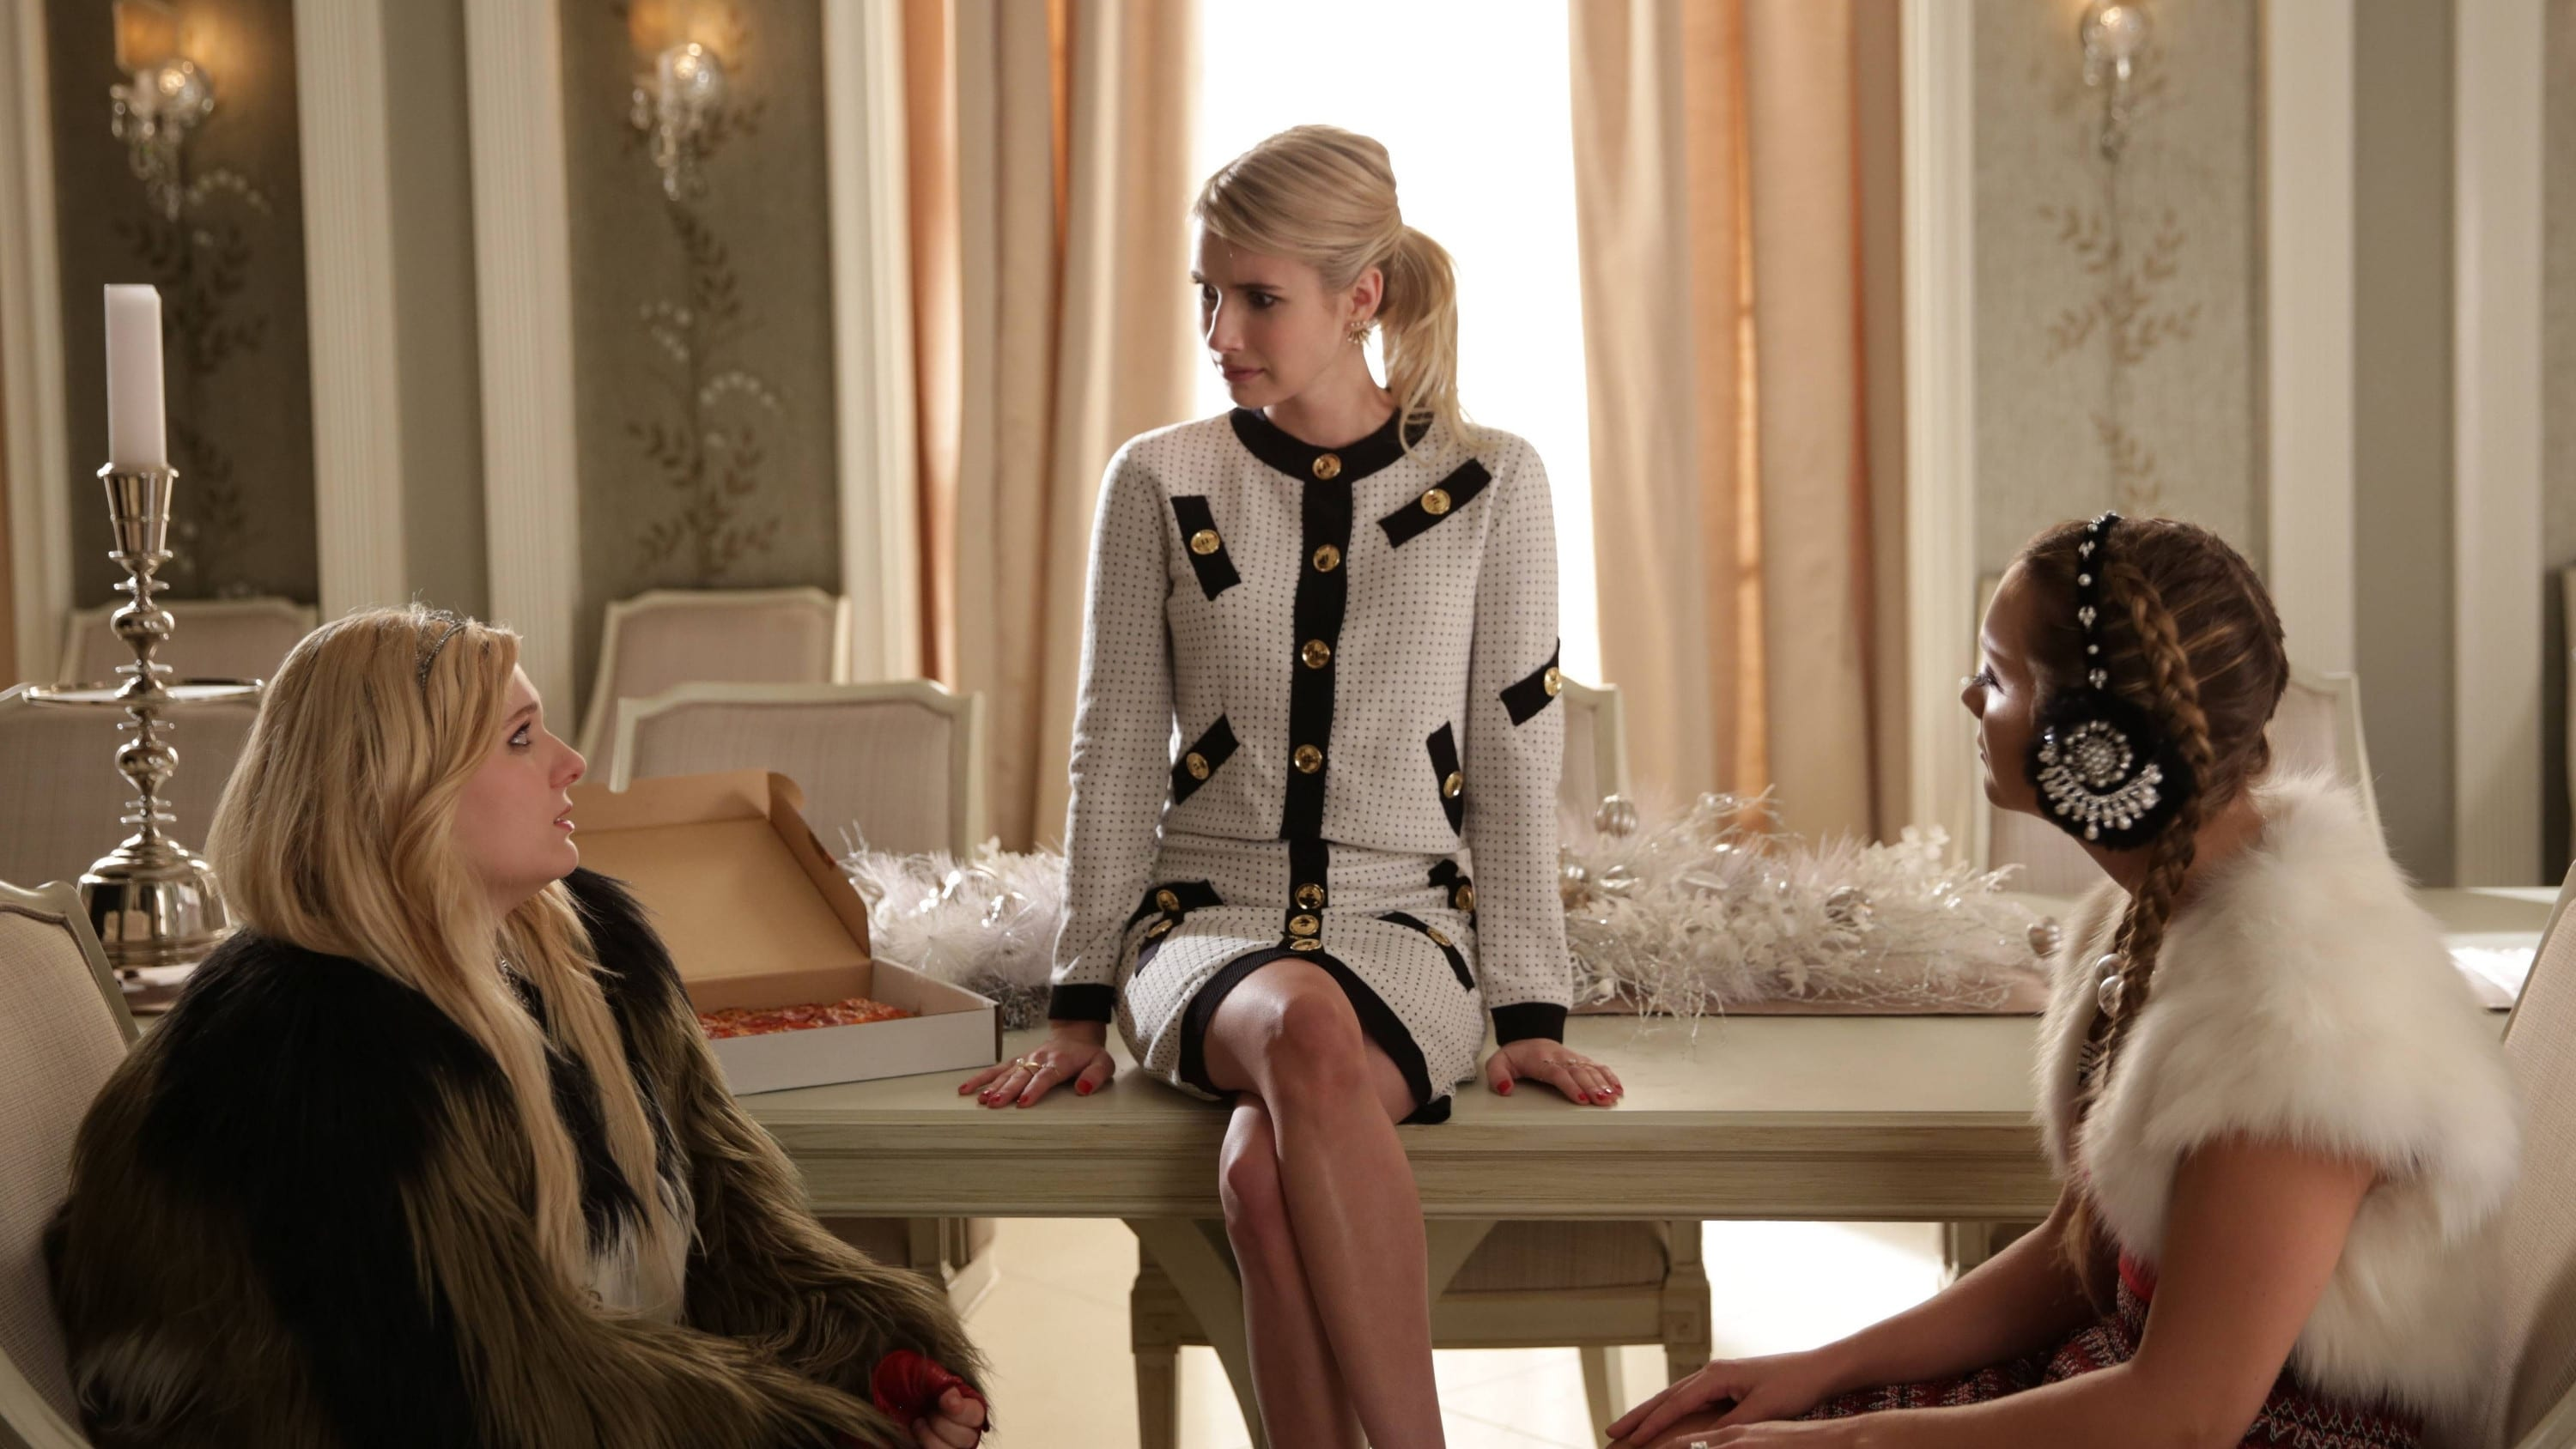 watch scream queens 1x13 online for free rarbg